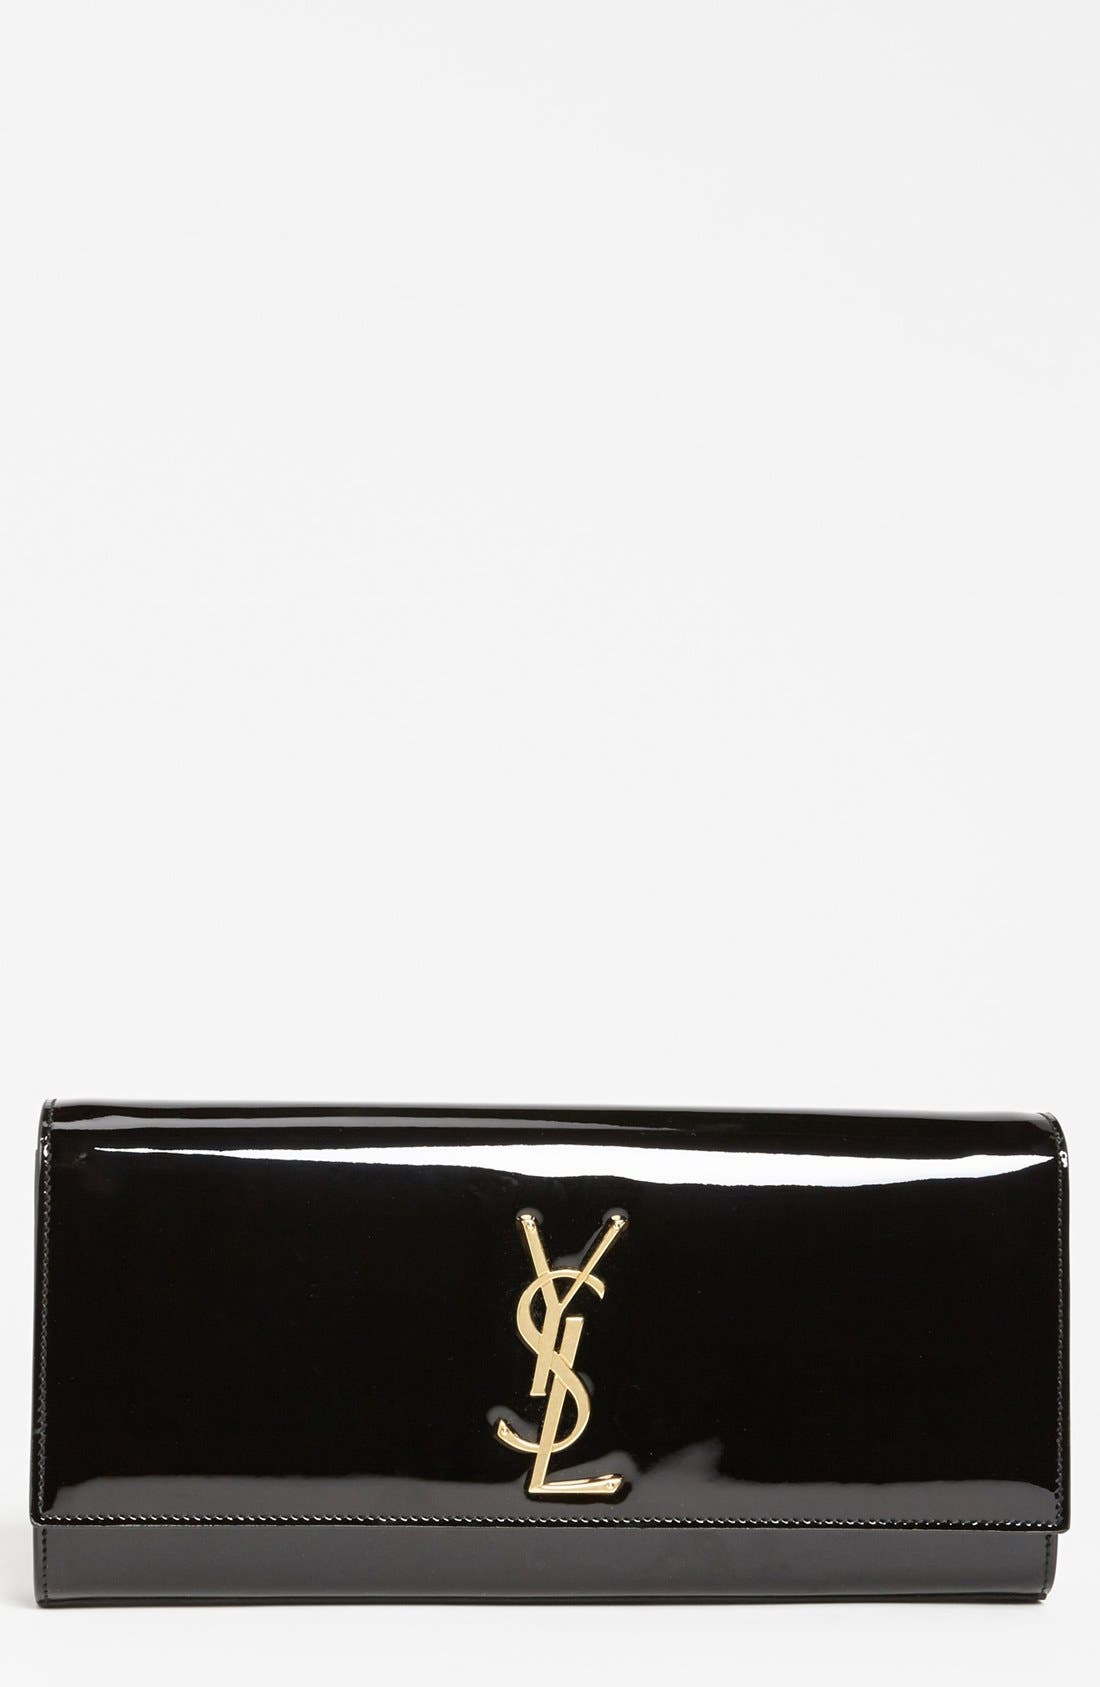 Alternate Image 1 Selected - Saint Laurent 'Cassandre - Laque' Leather Clutch